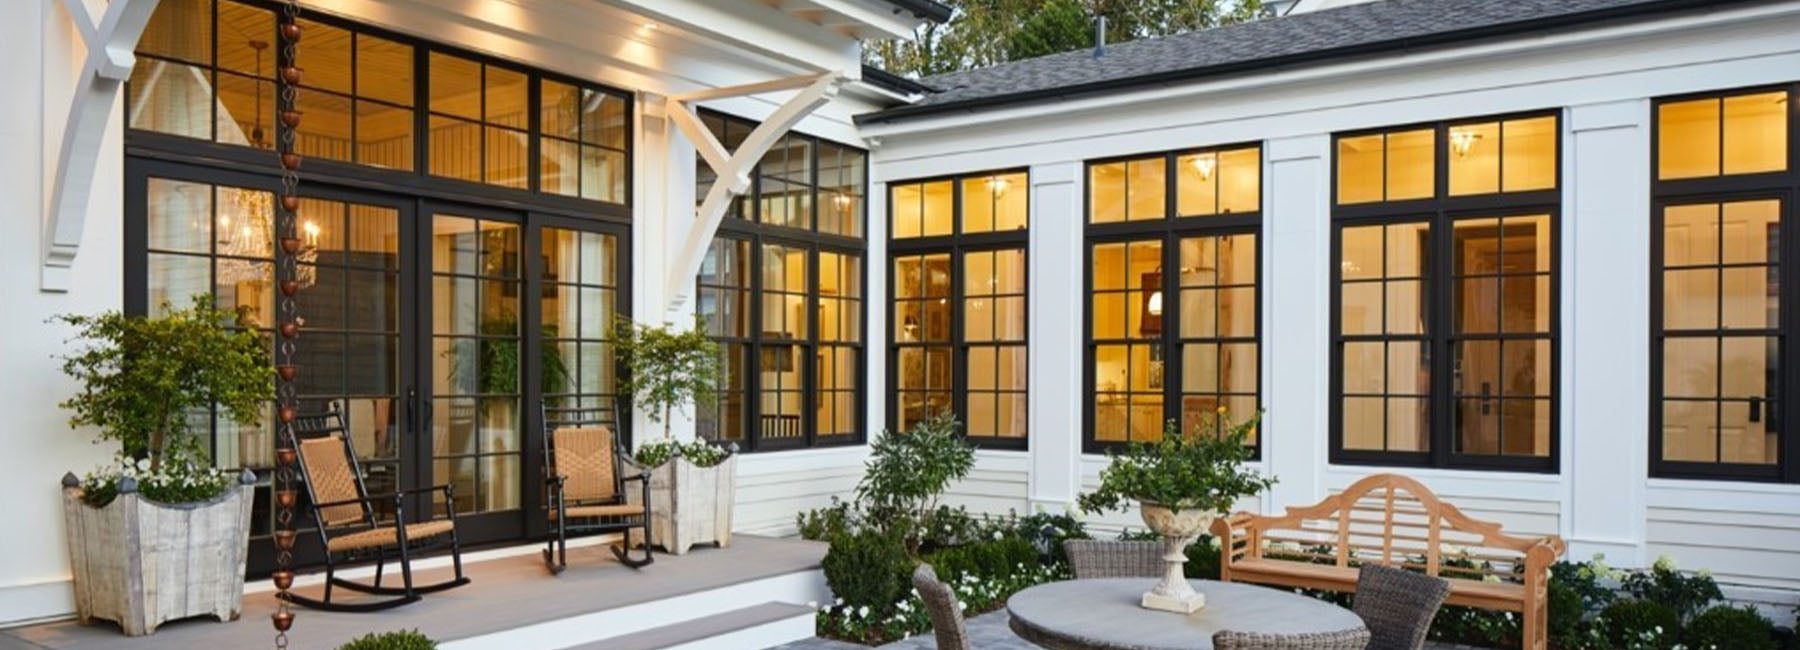 Reduce Energy Costs with Replacement Windows